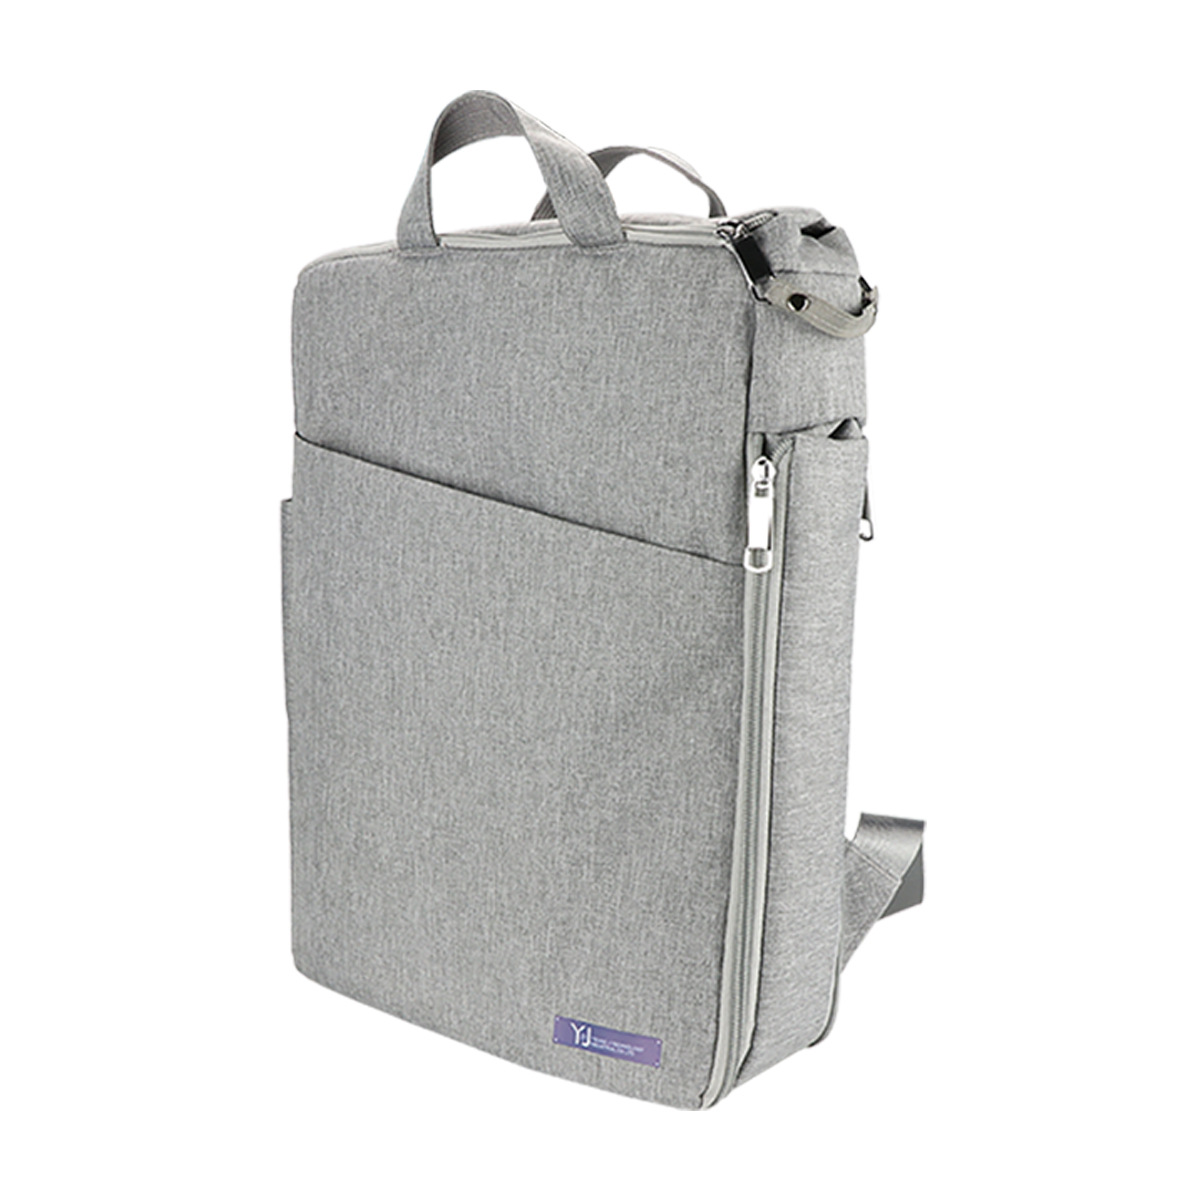 Yj Backpack Speed Cube Store Uk